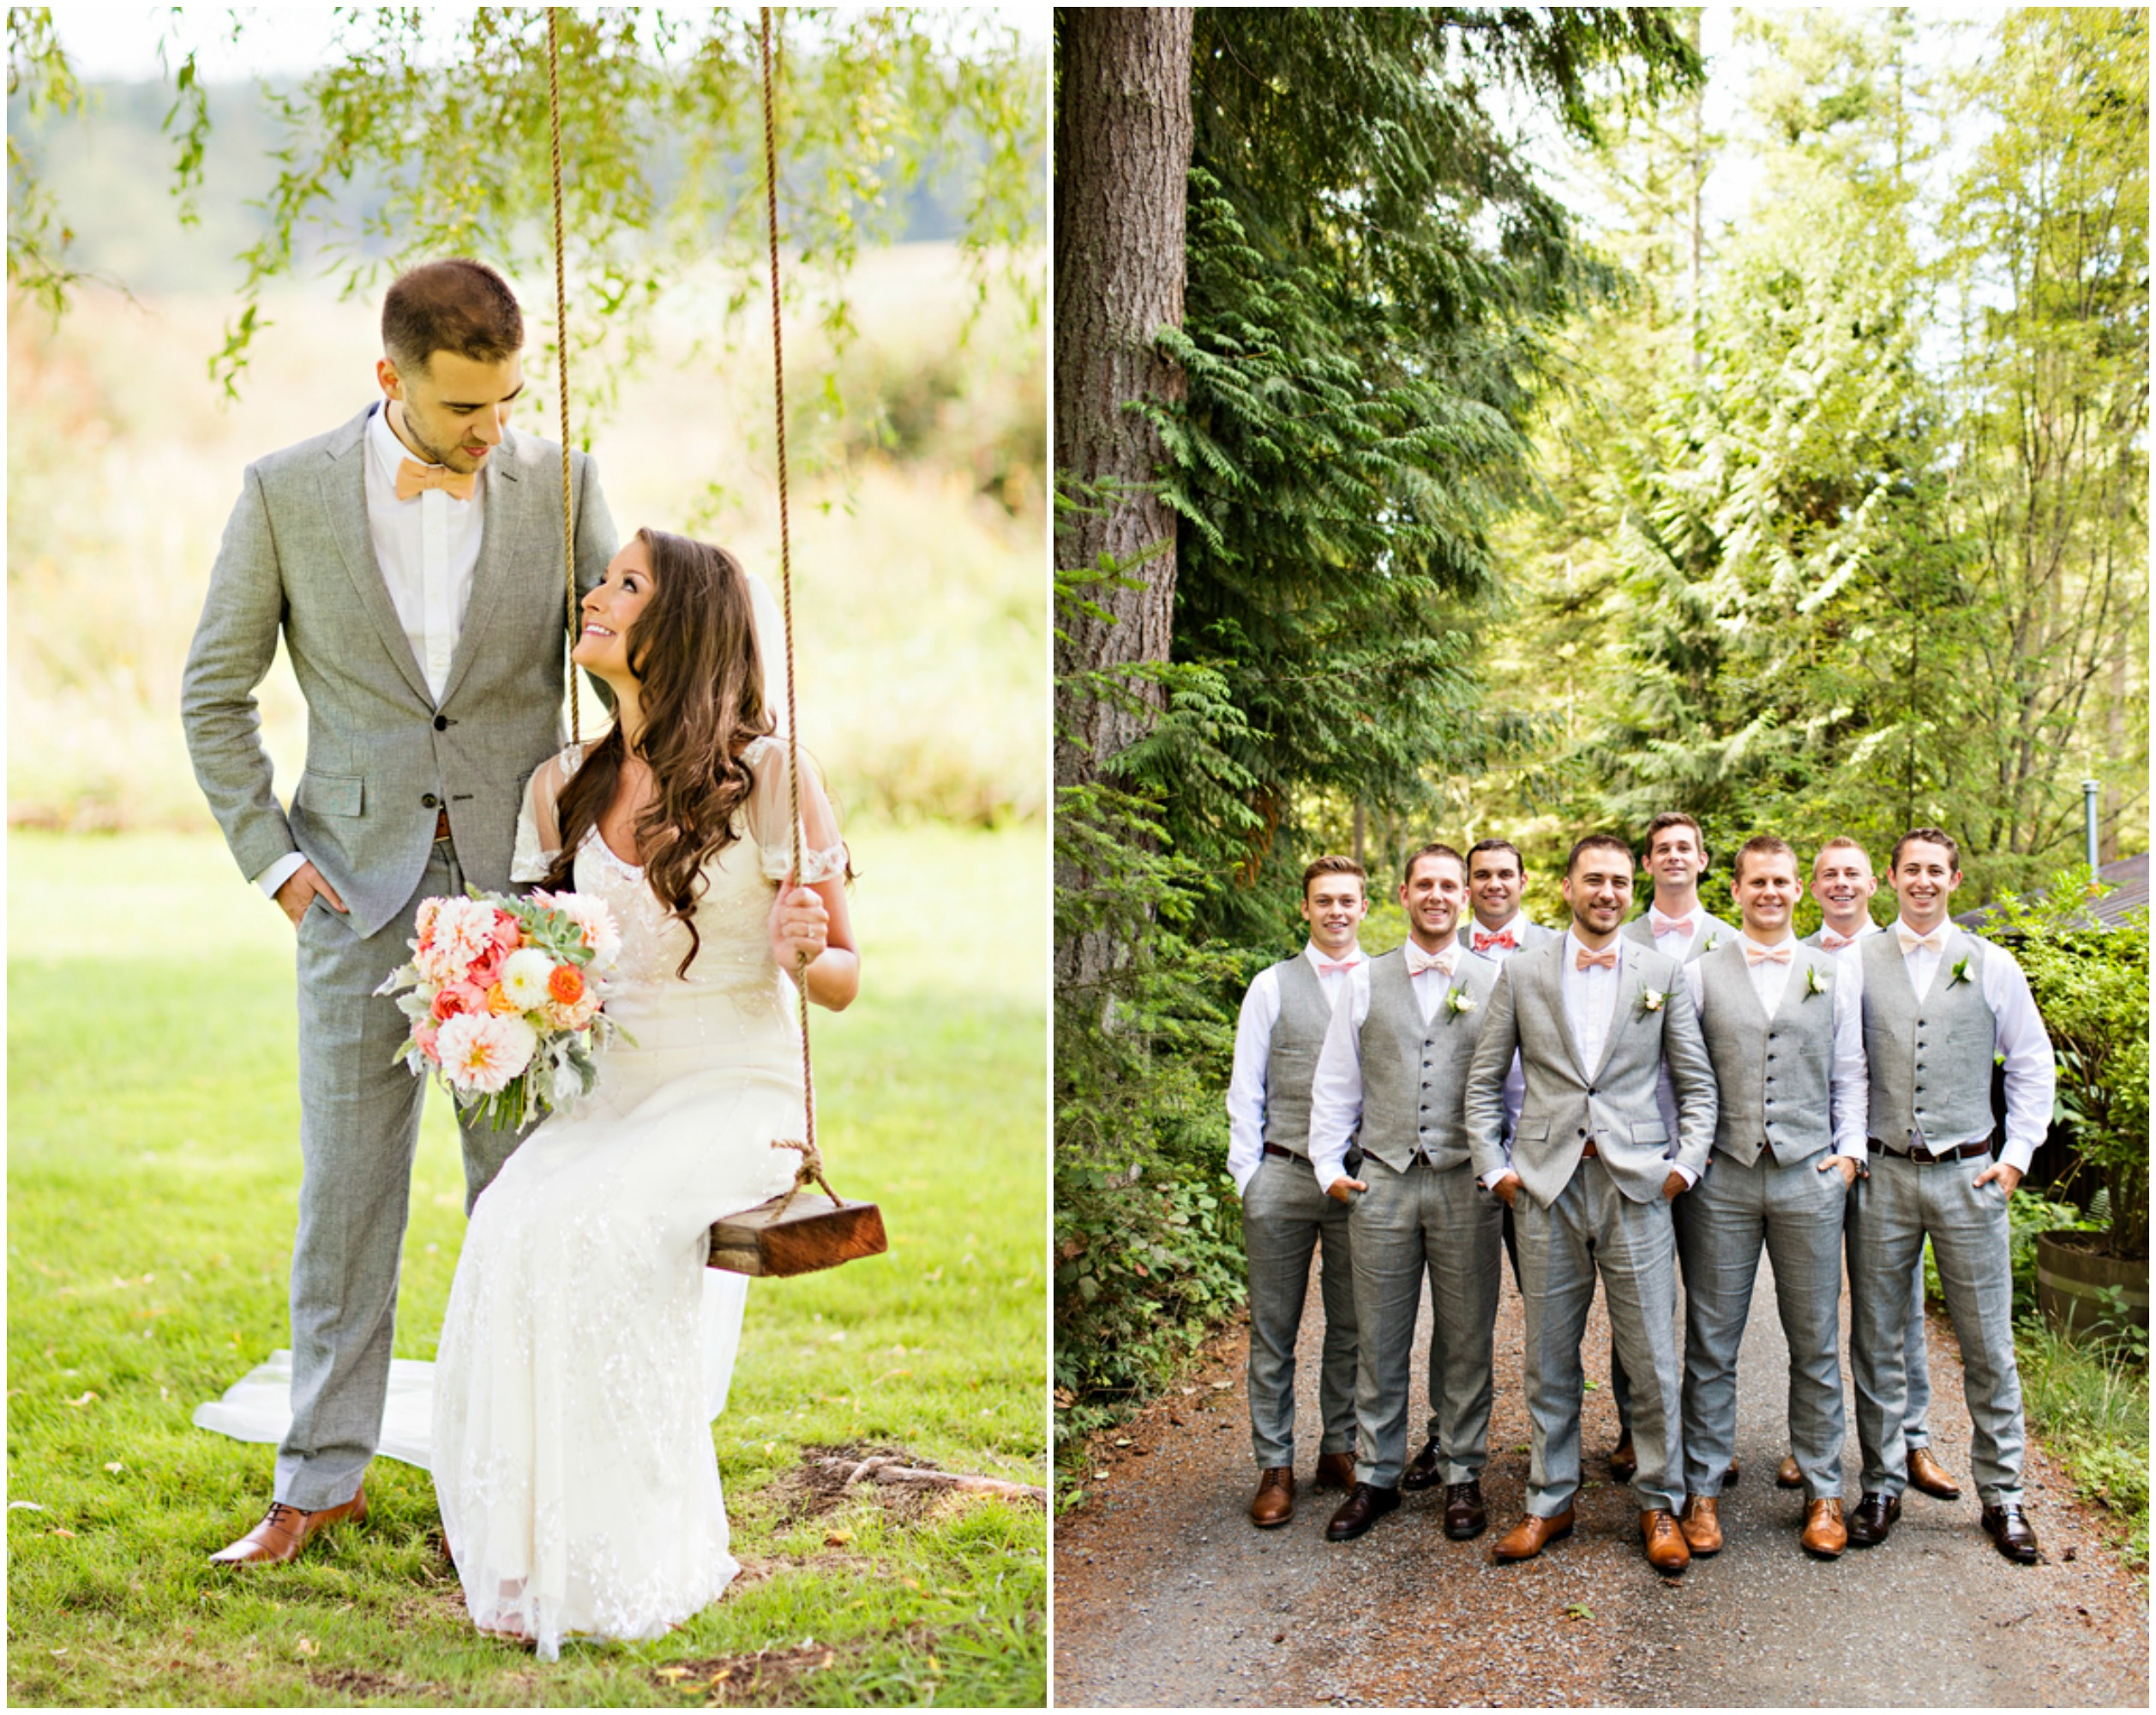 Outdoor Wedding With Vintage Decorations